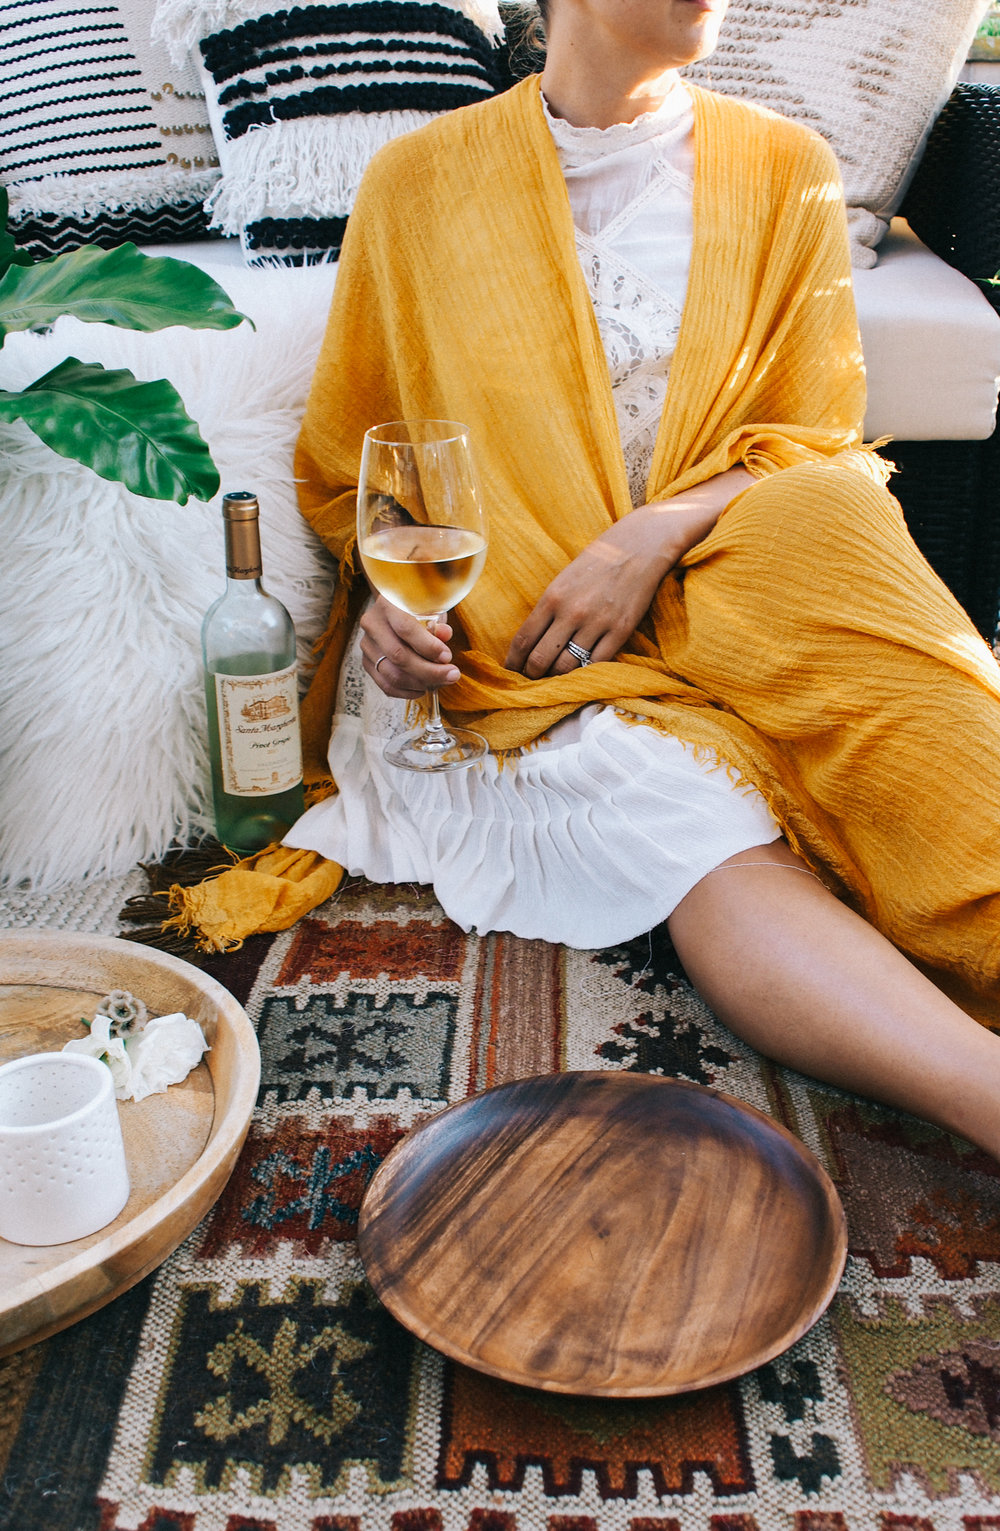 How to create the perfect oasis for sipping wine with friends this summer | A Fabulous Fete